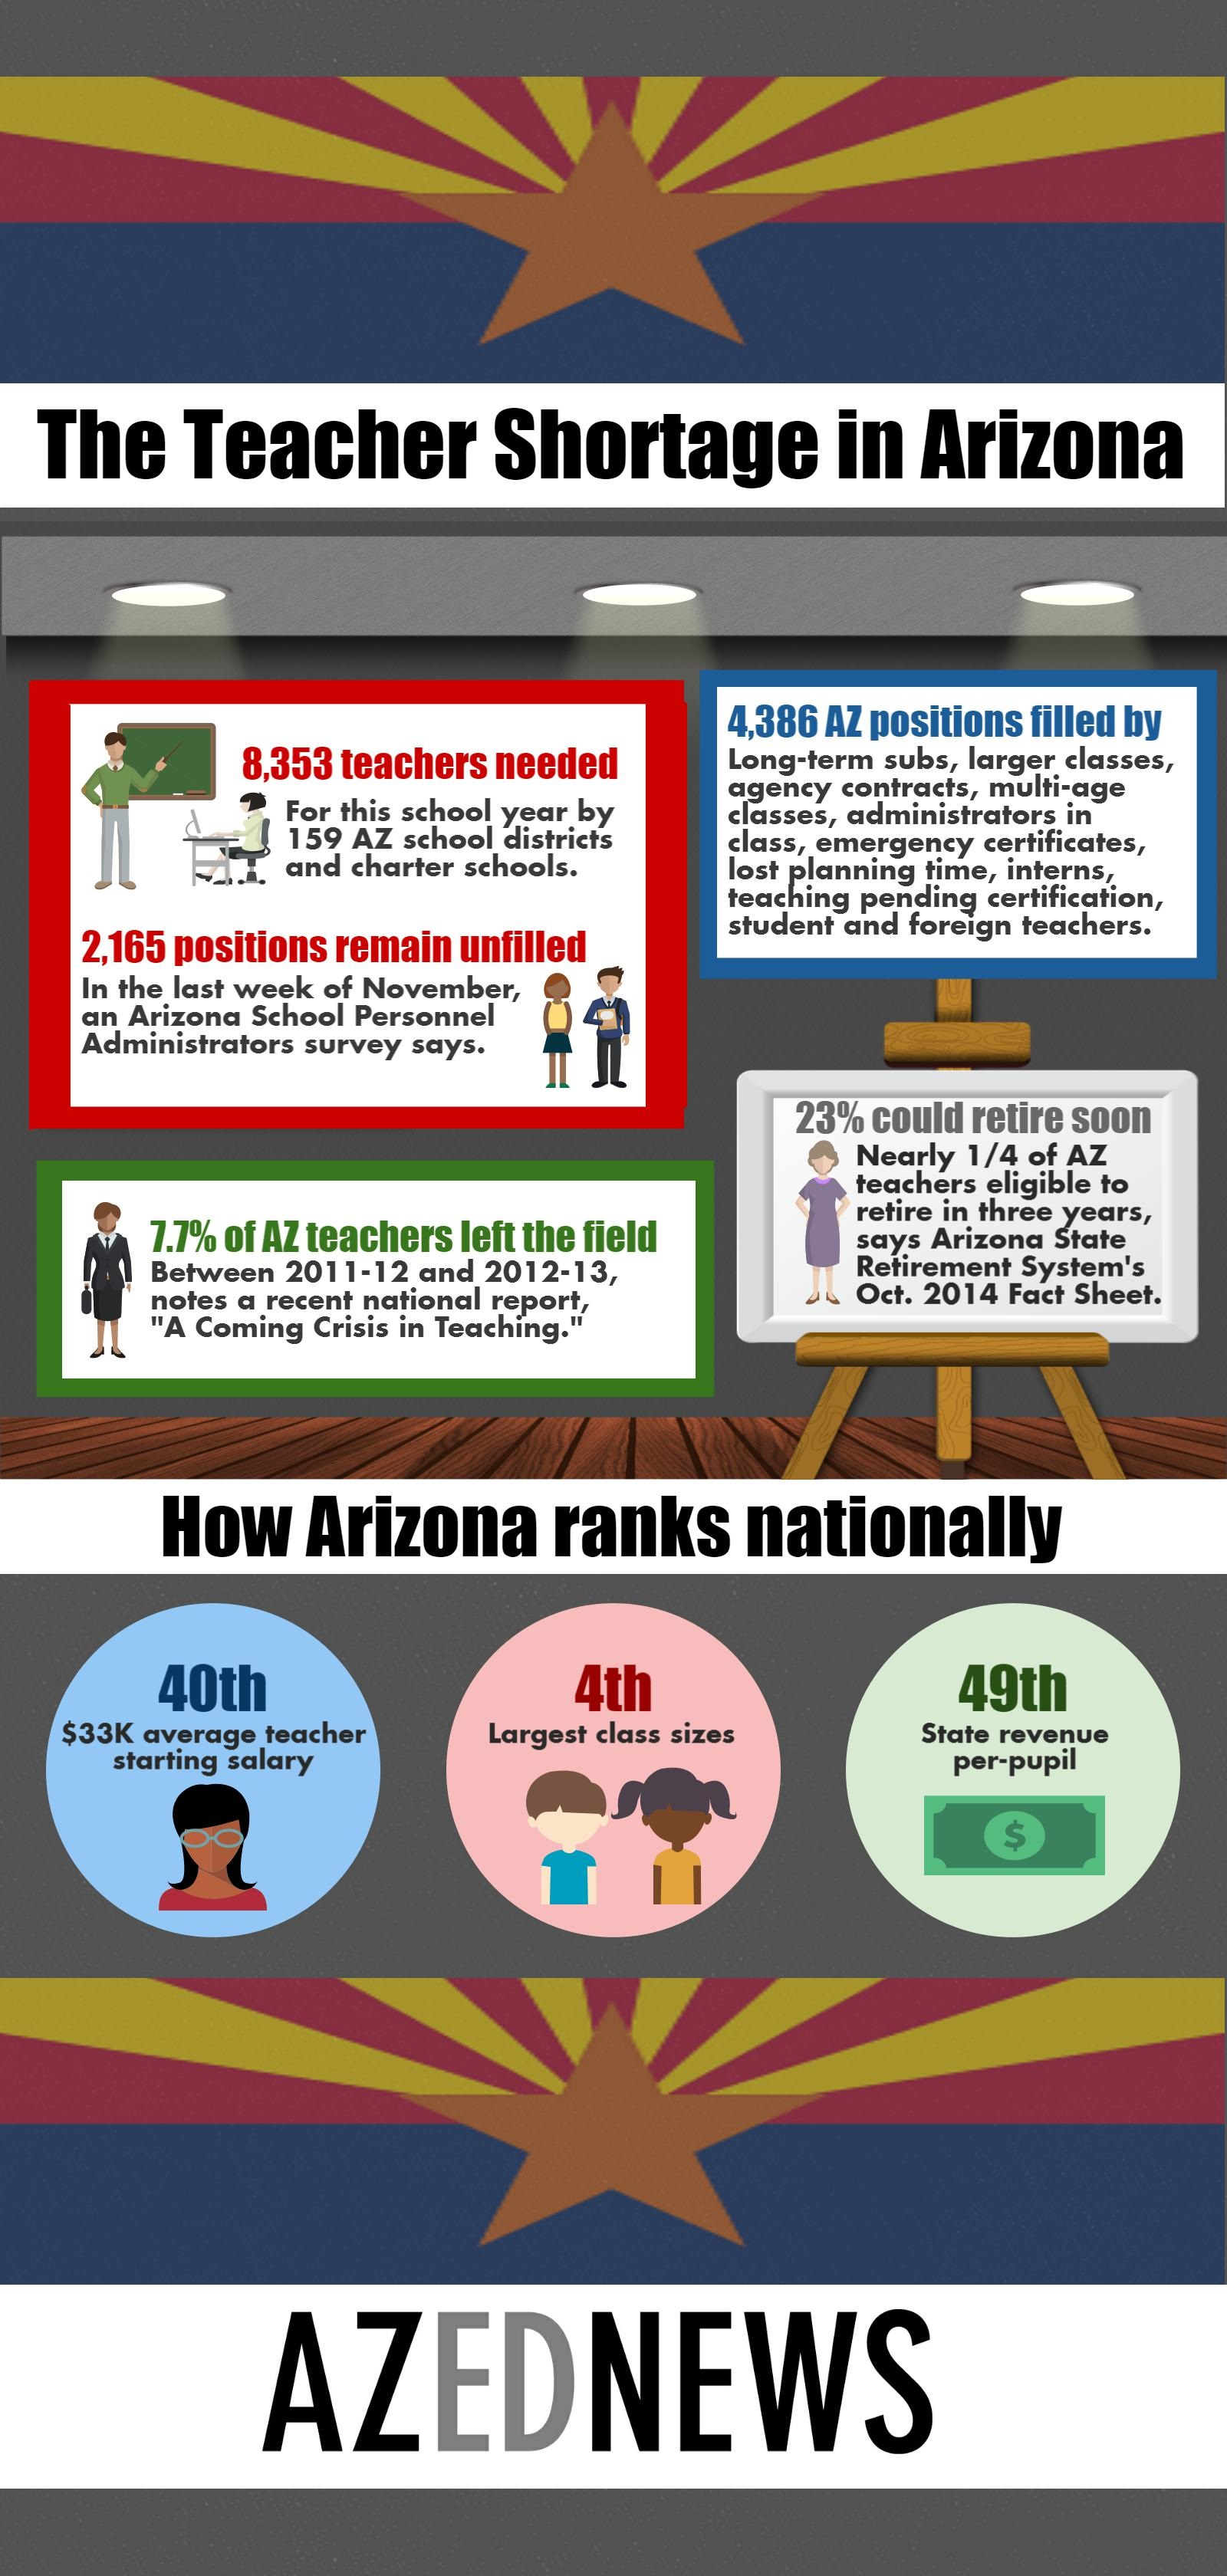 Education advocates urge Governor, Legislators to make teachers' pay raises a priority AZEdNewsArizonaTeacherShortageInfoGraphic